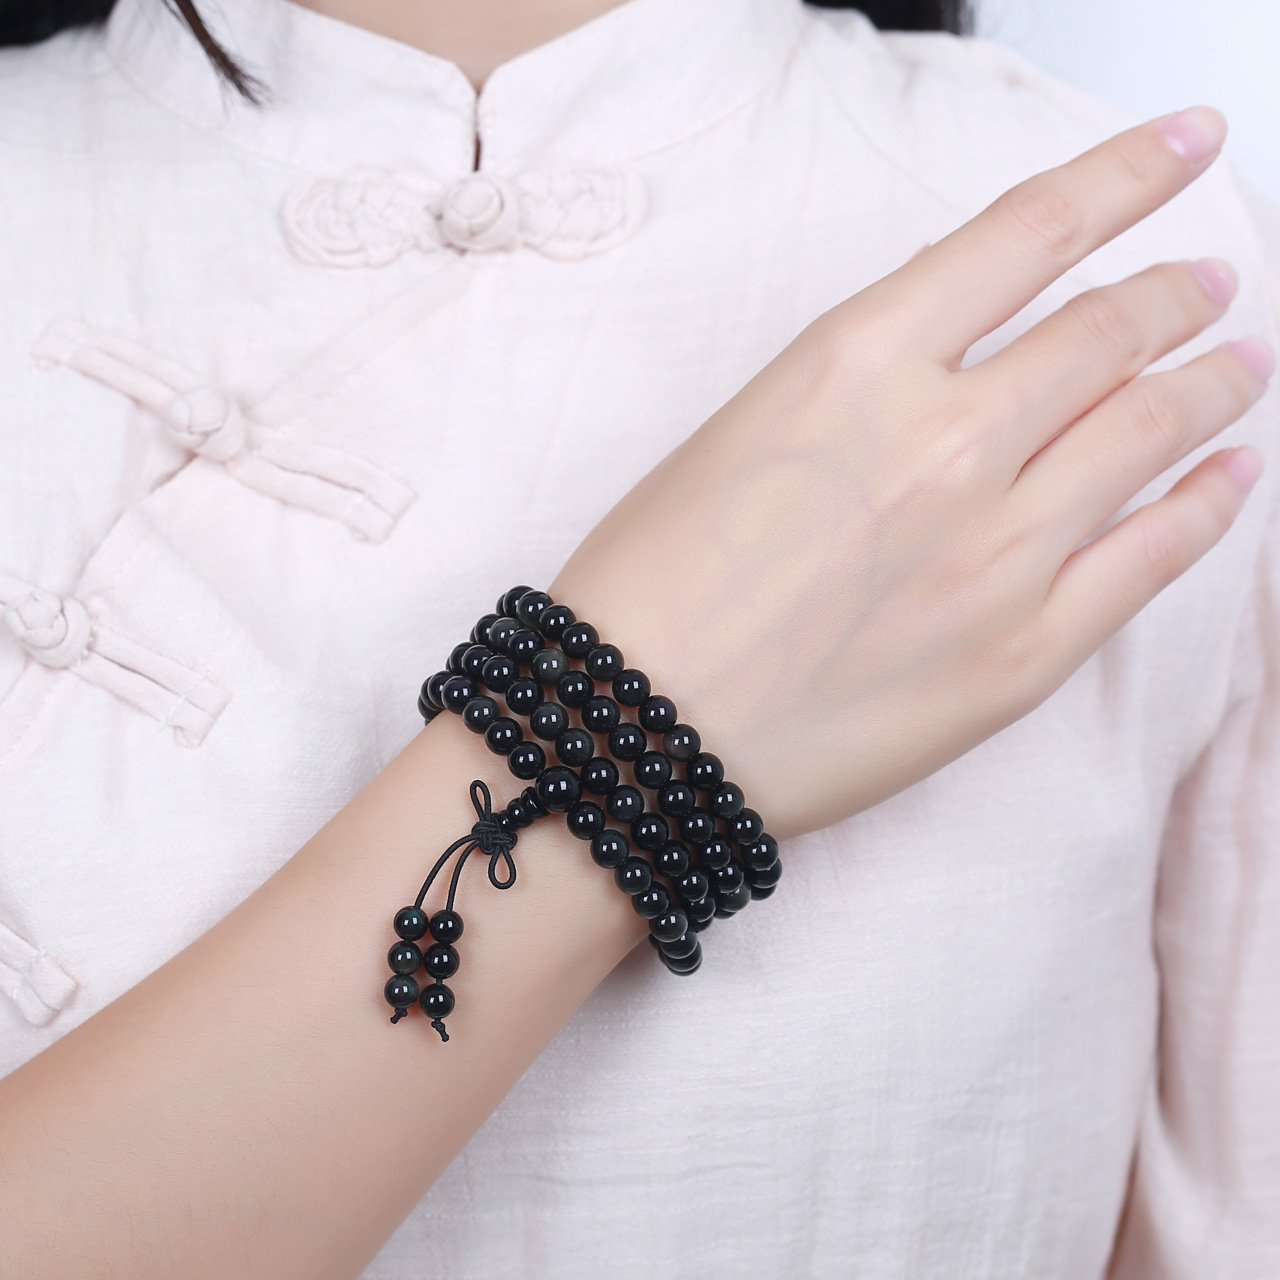 Master Obsidian Bracelet Natural 108pcs pray beads bracelet foe men or women